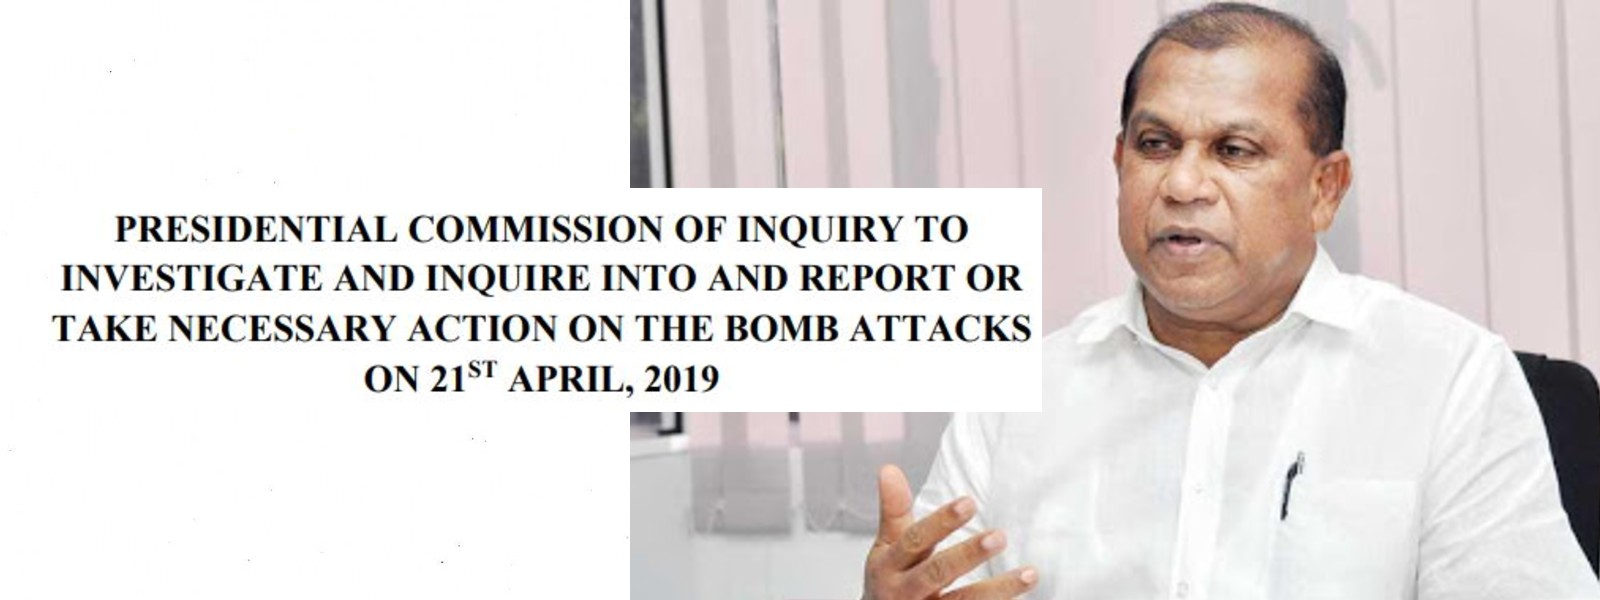 Multiple events led to the 2019 April 21st Attacks – Ranjith Madduma Bandara